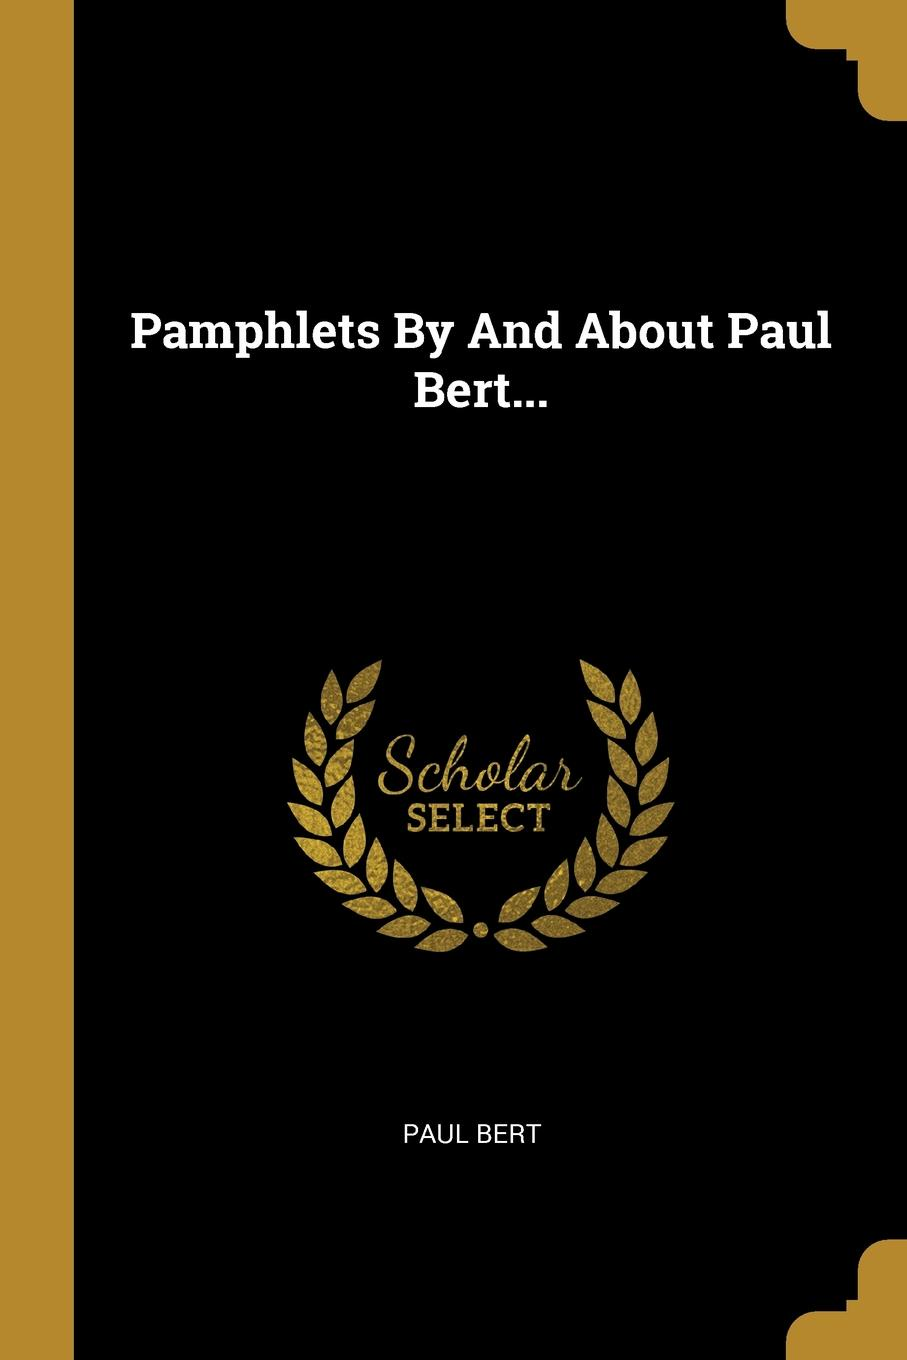 Pamphlets By And About Paul Bert...